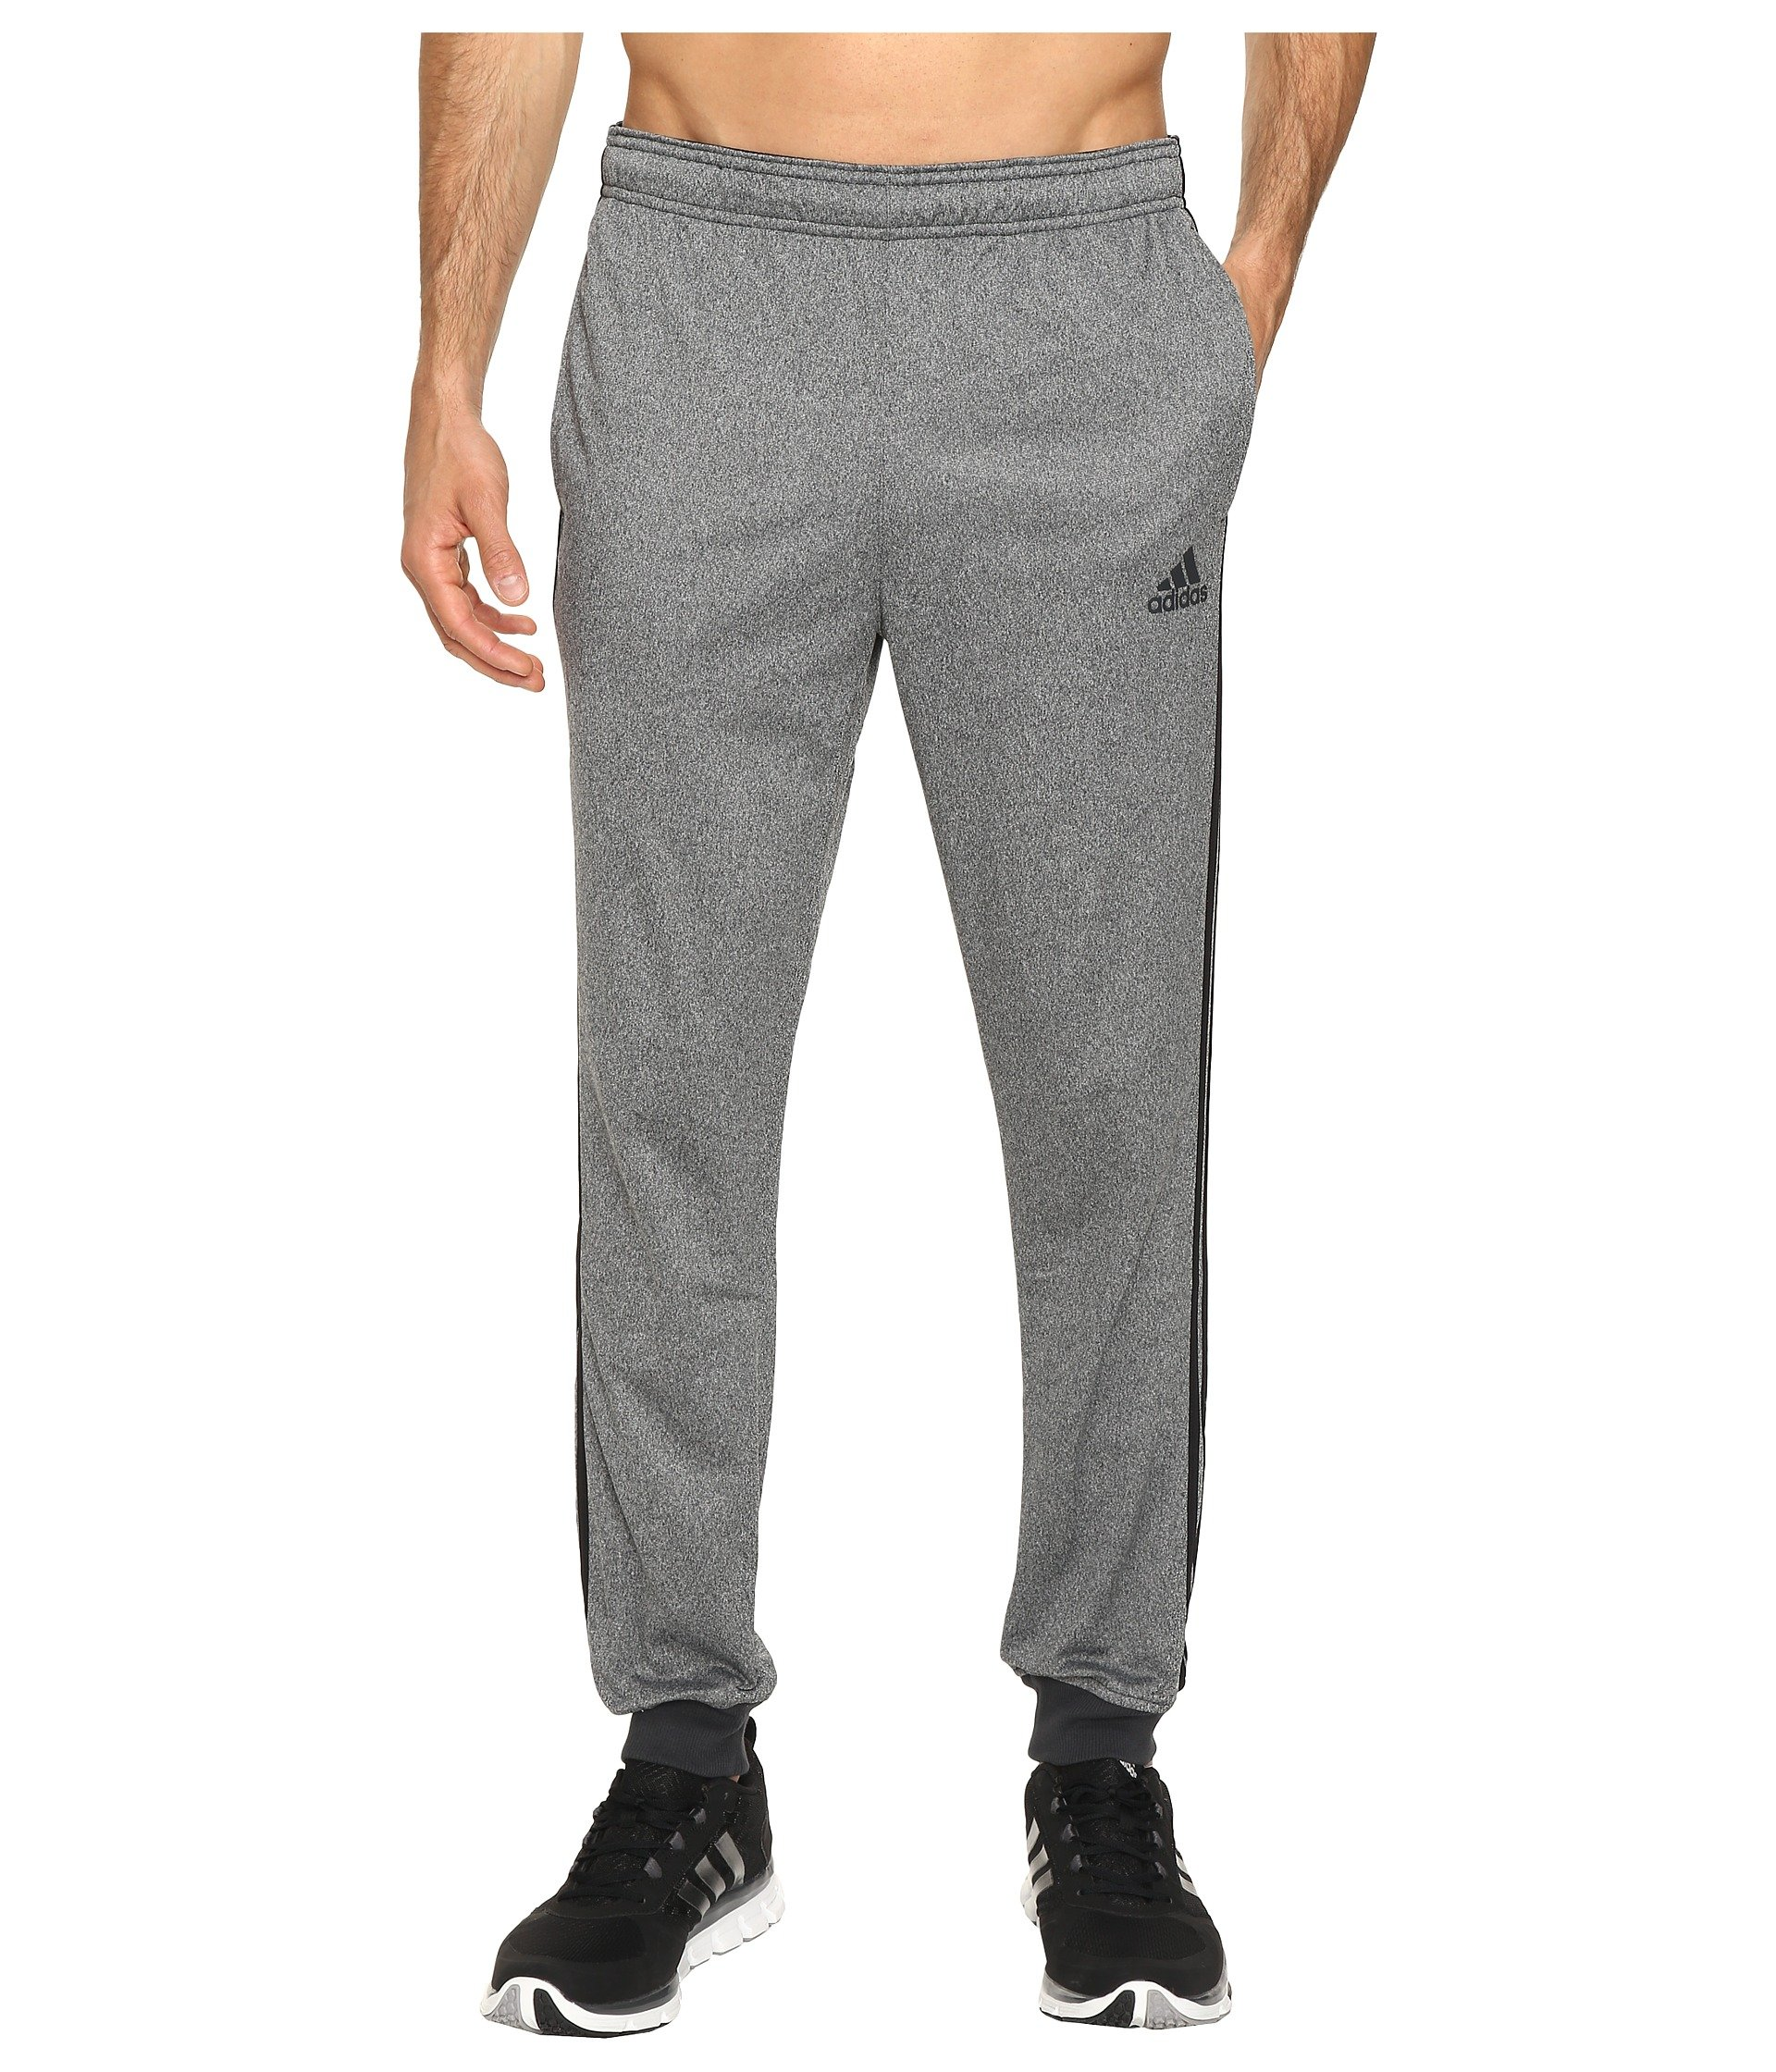 adidas Men's Essentials Tricot Jogger Pants, Dark Grey Heather/Black, X-Large by adidas